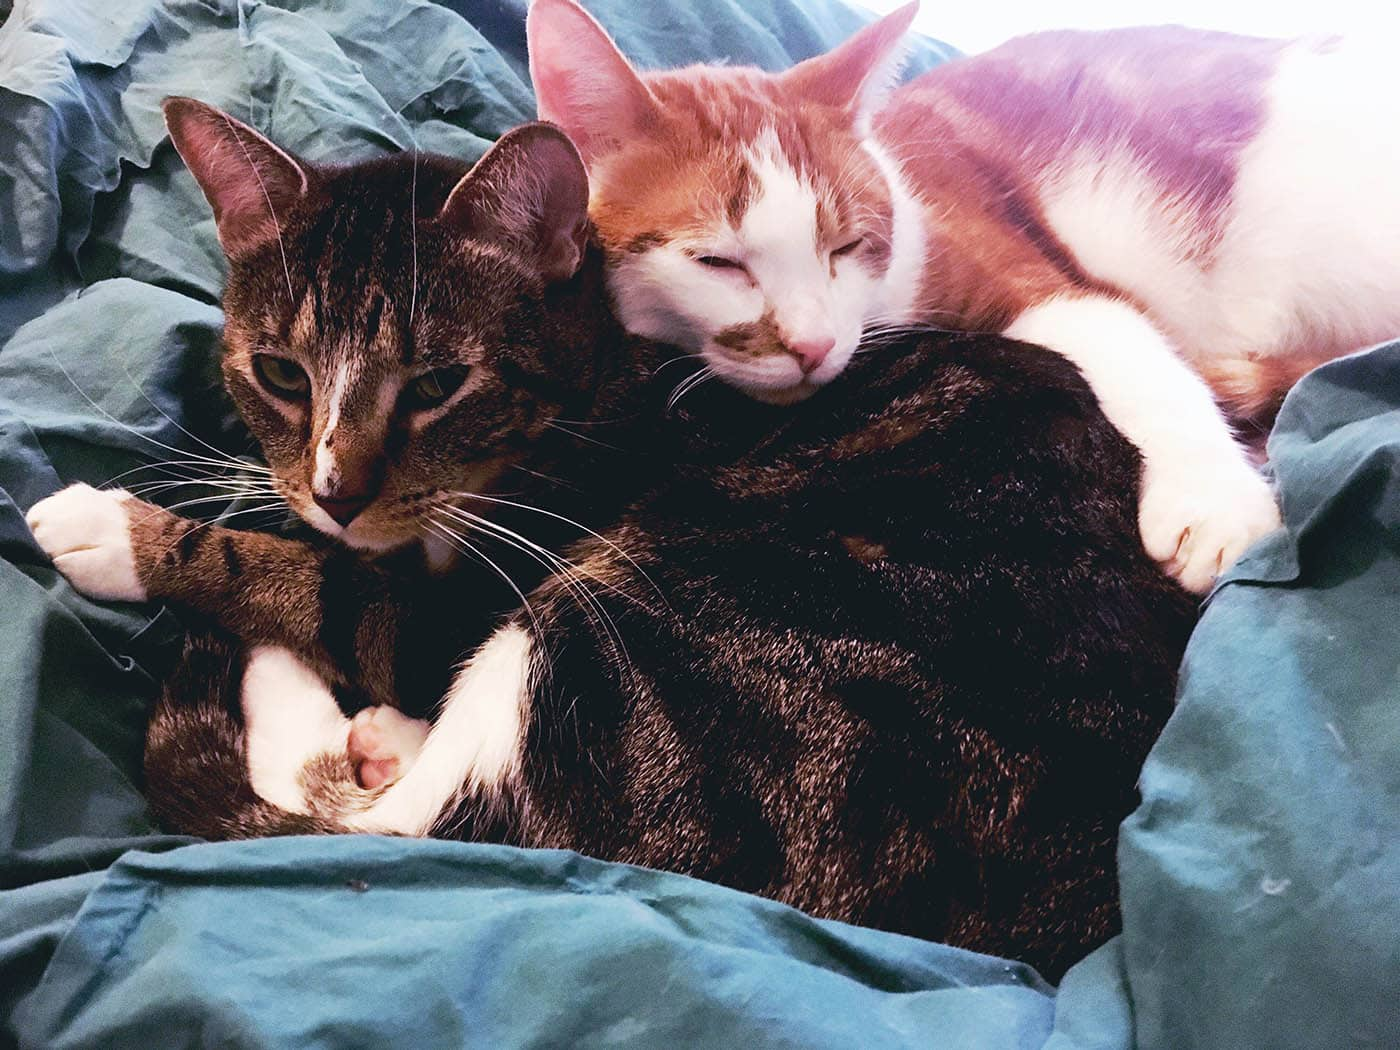 My cats snuggling in bed.